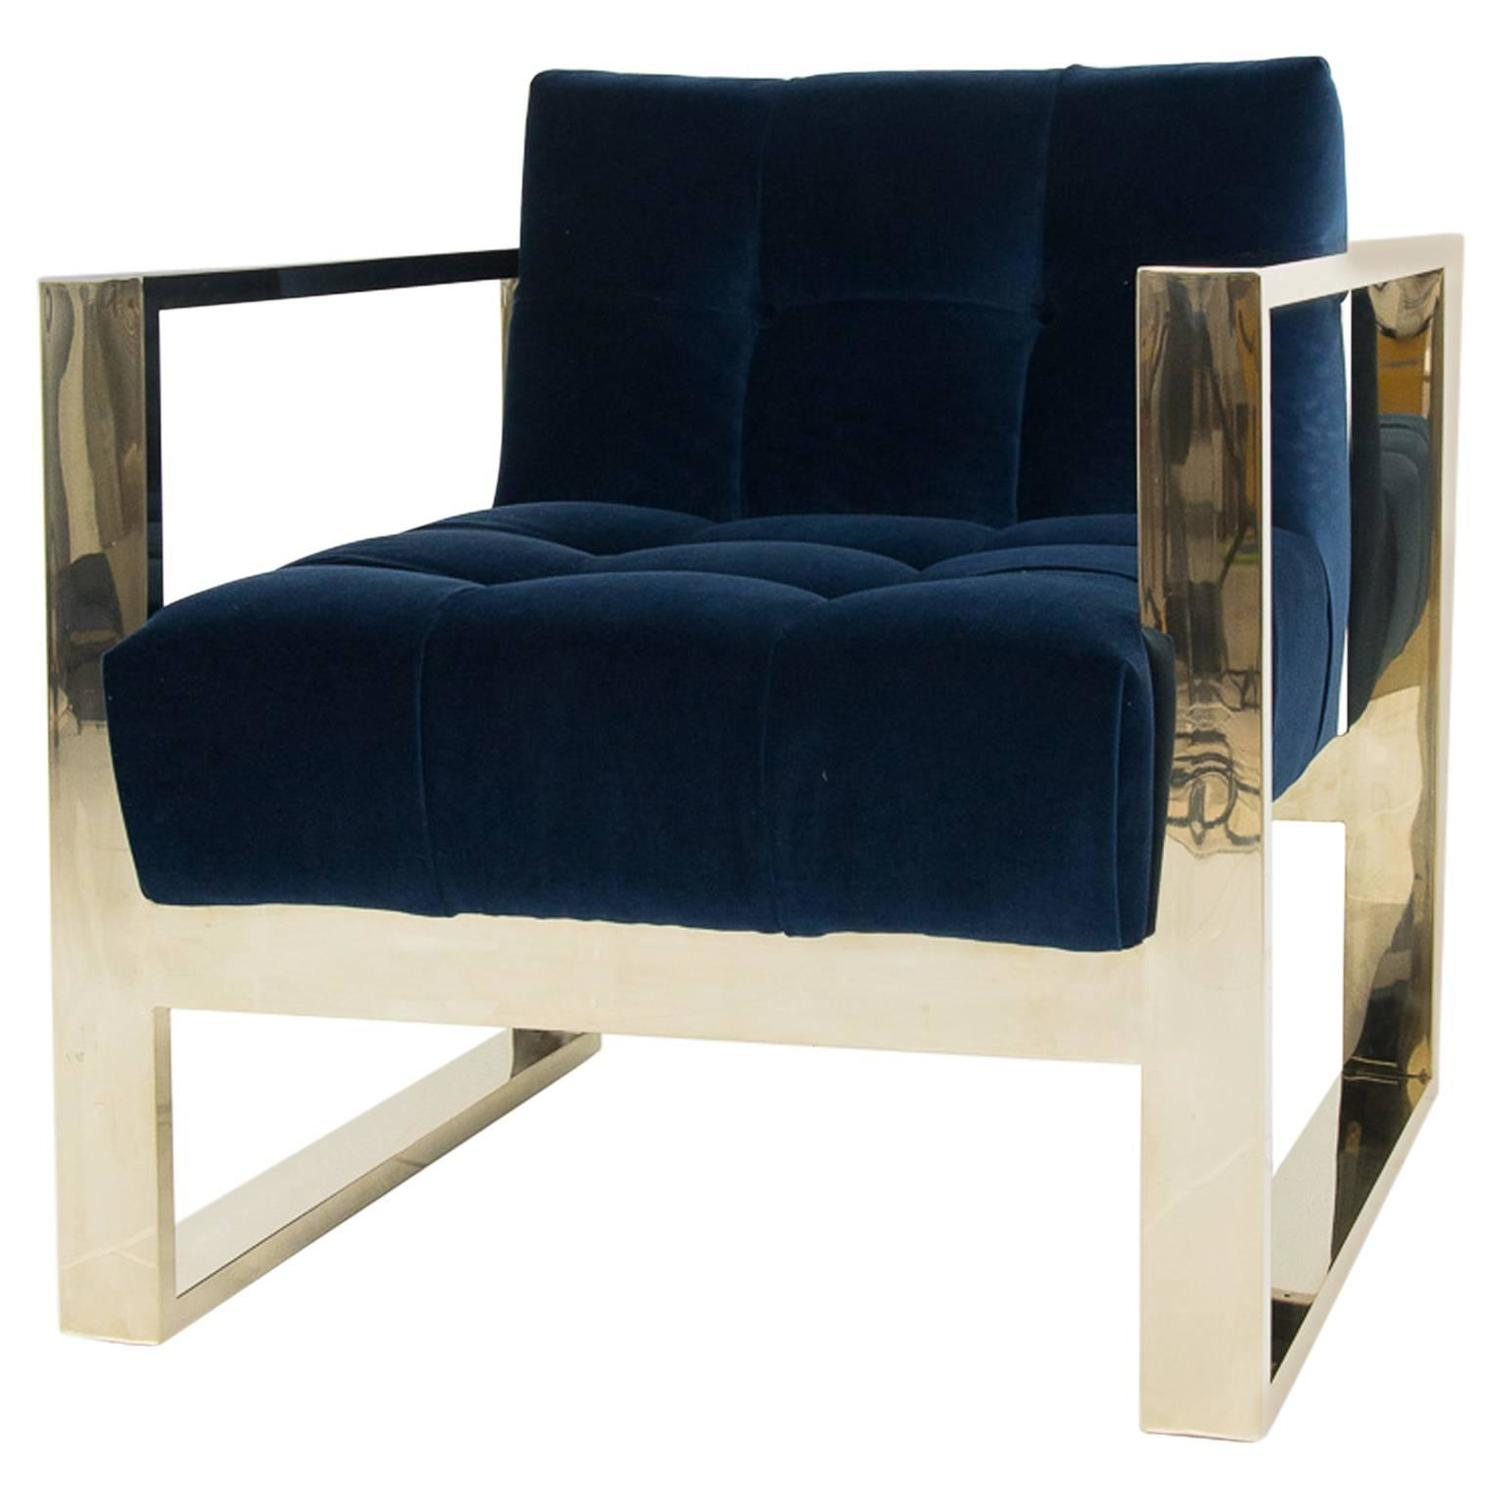 Brass Kube Chair in Navy Velvet For Sale at 1stdibs